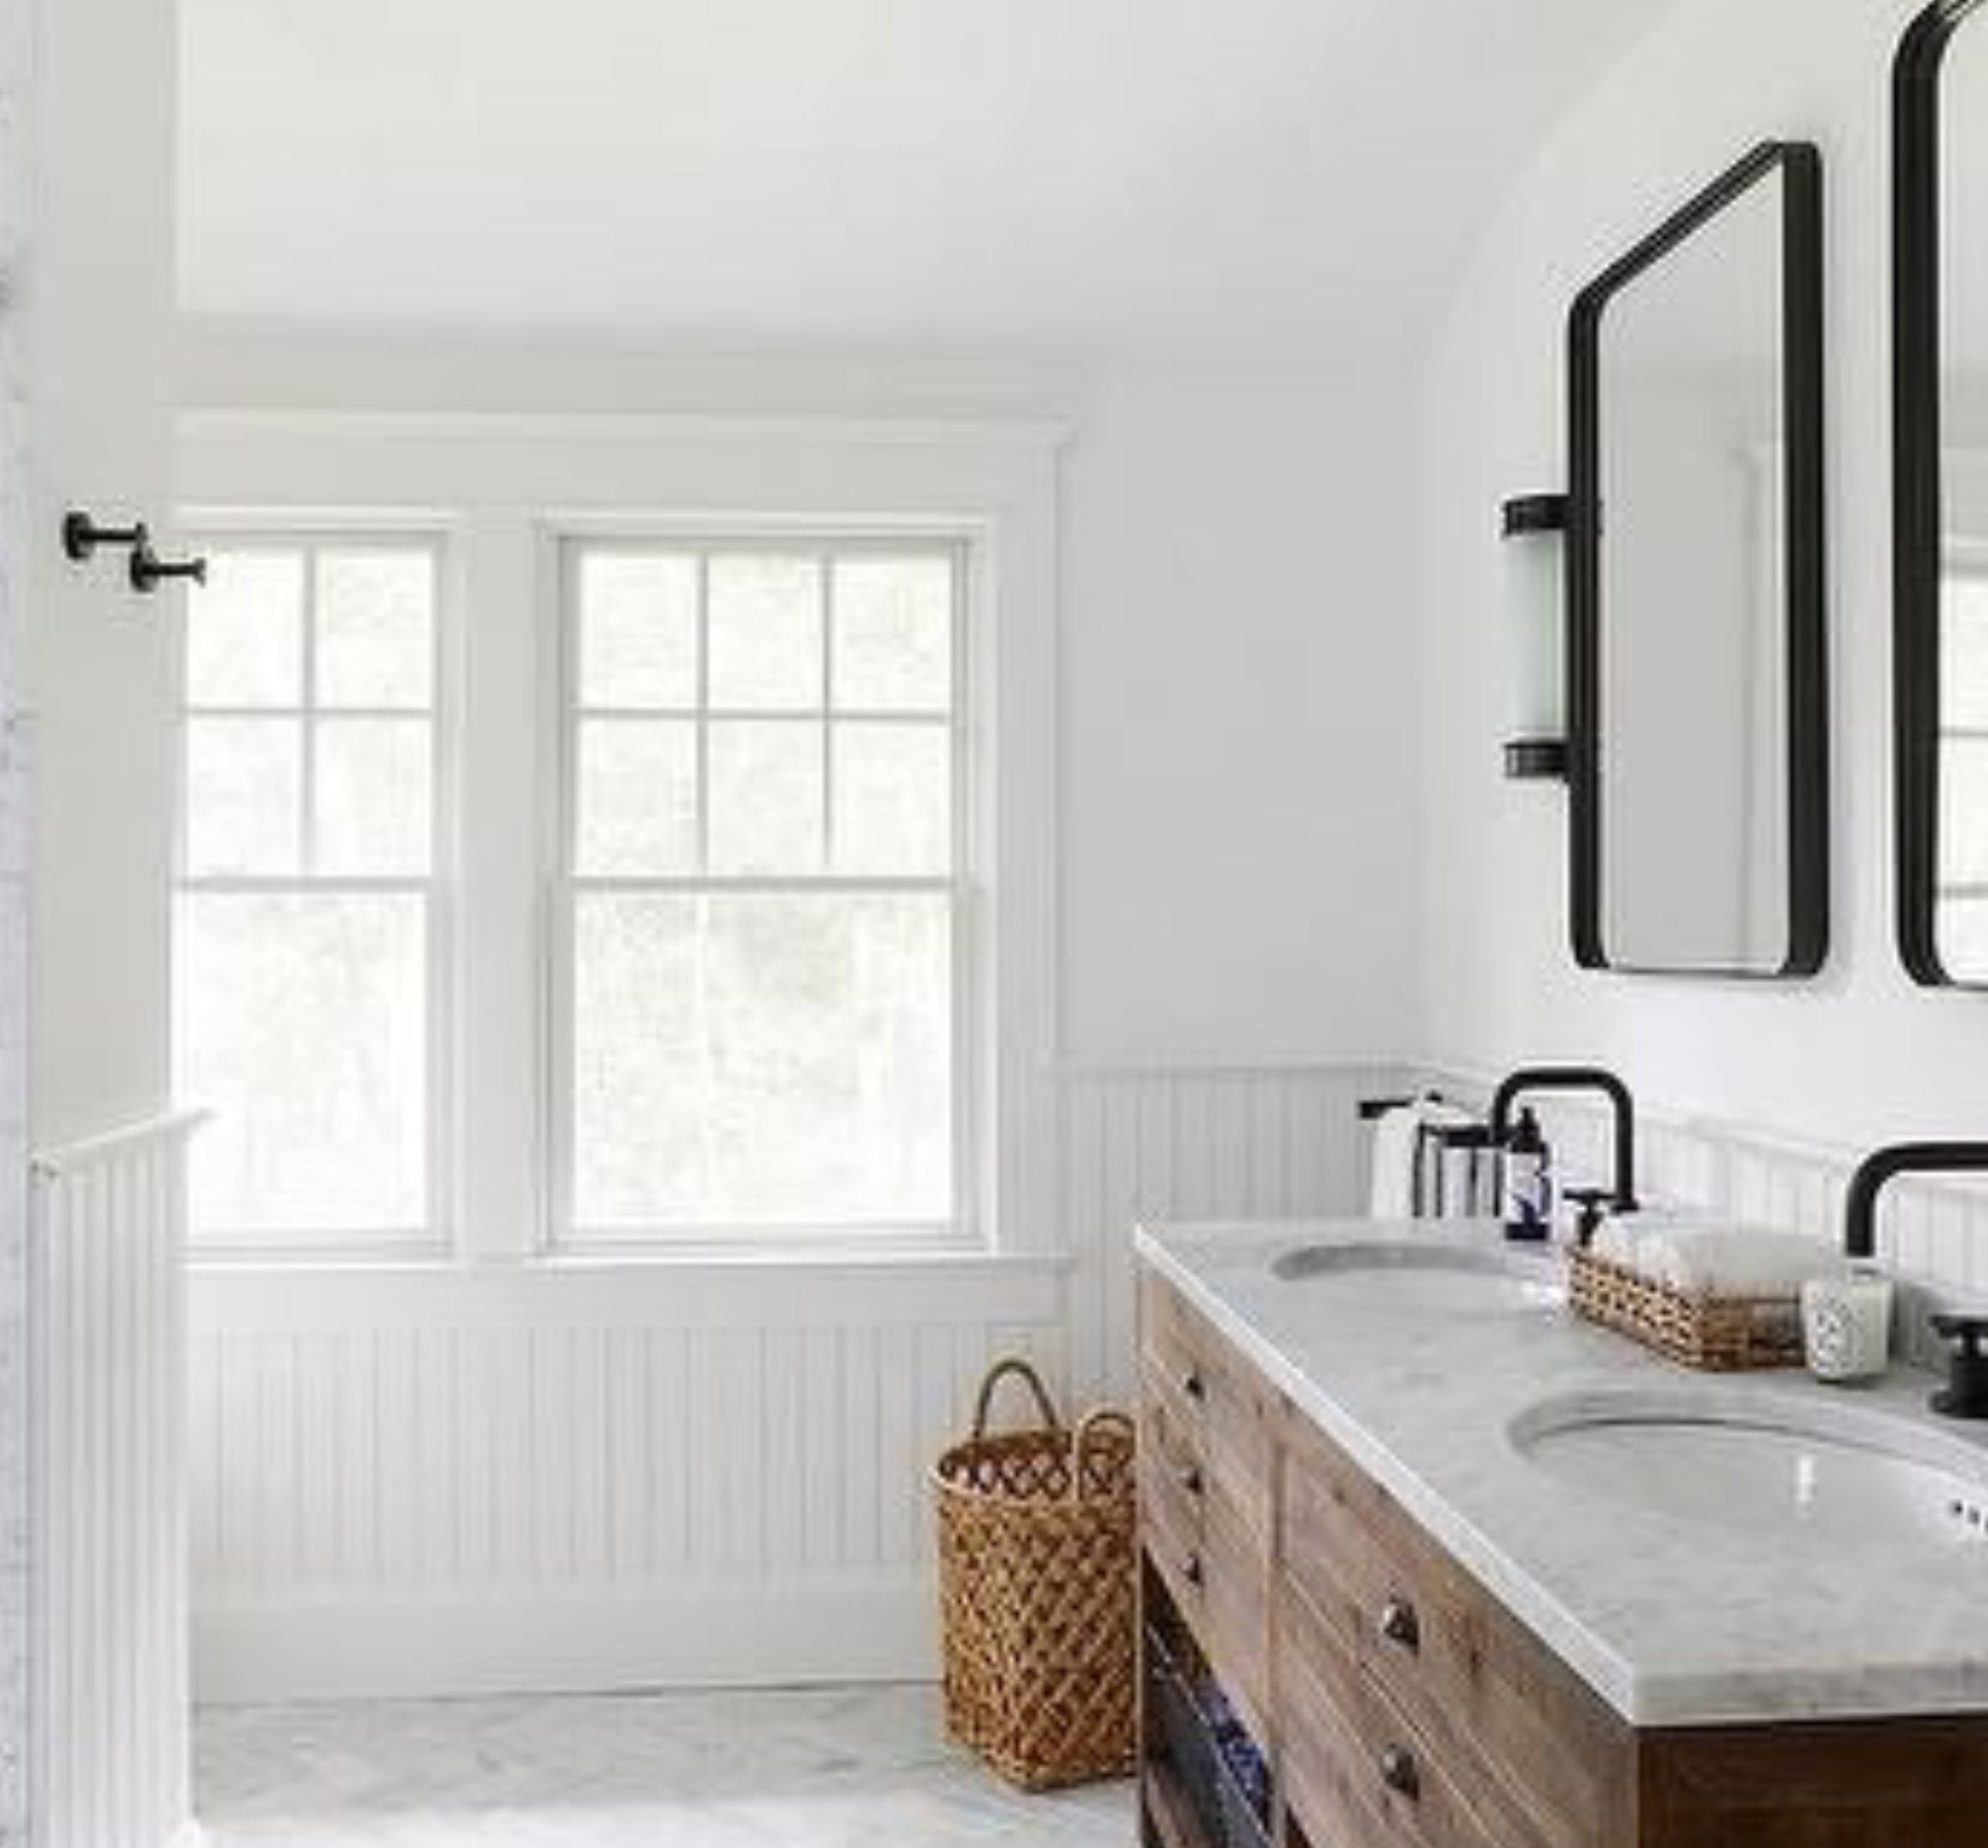 Hey Looking For Bathroom Design You Must Check Amazing Bathroom Design Design Wh Modern Farmhouse Bathroom Bathroom Farmhouse Style Farmhouse Bathroom Decor